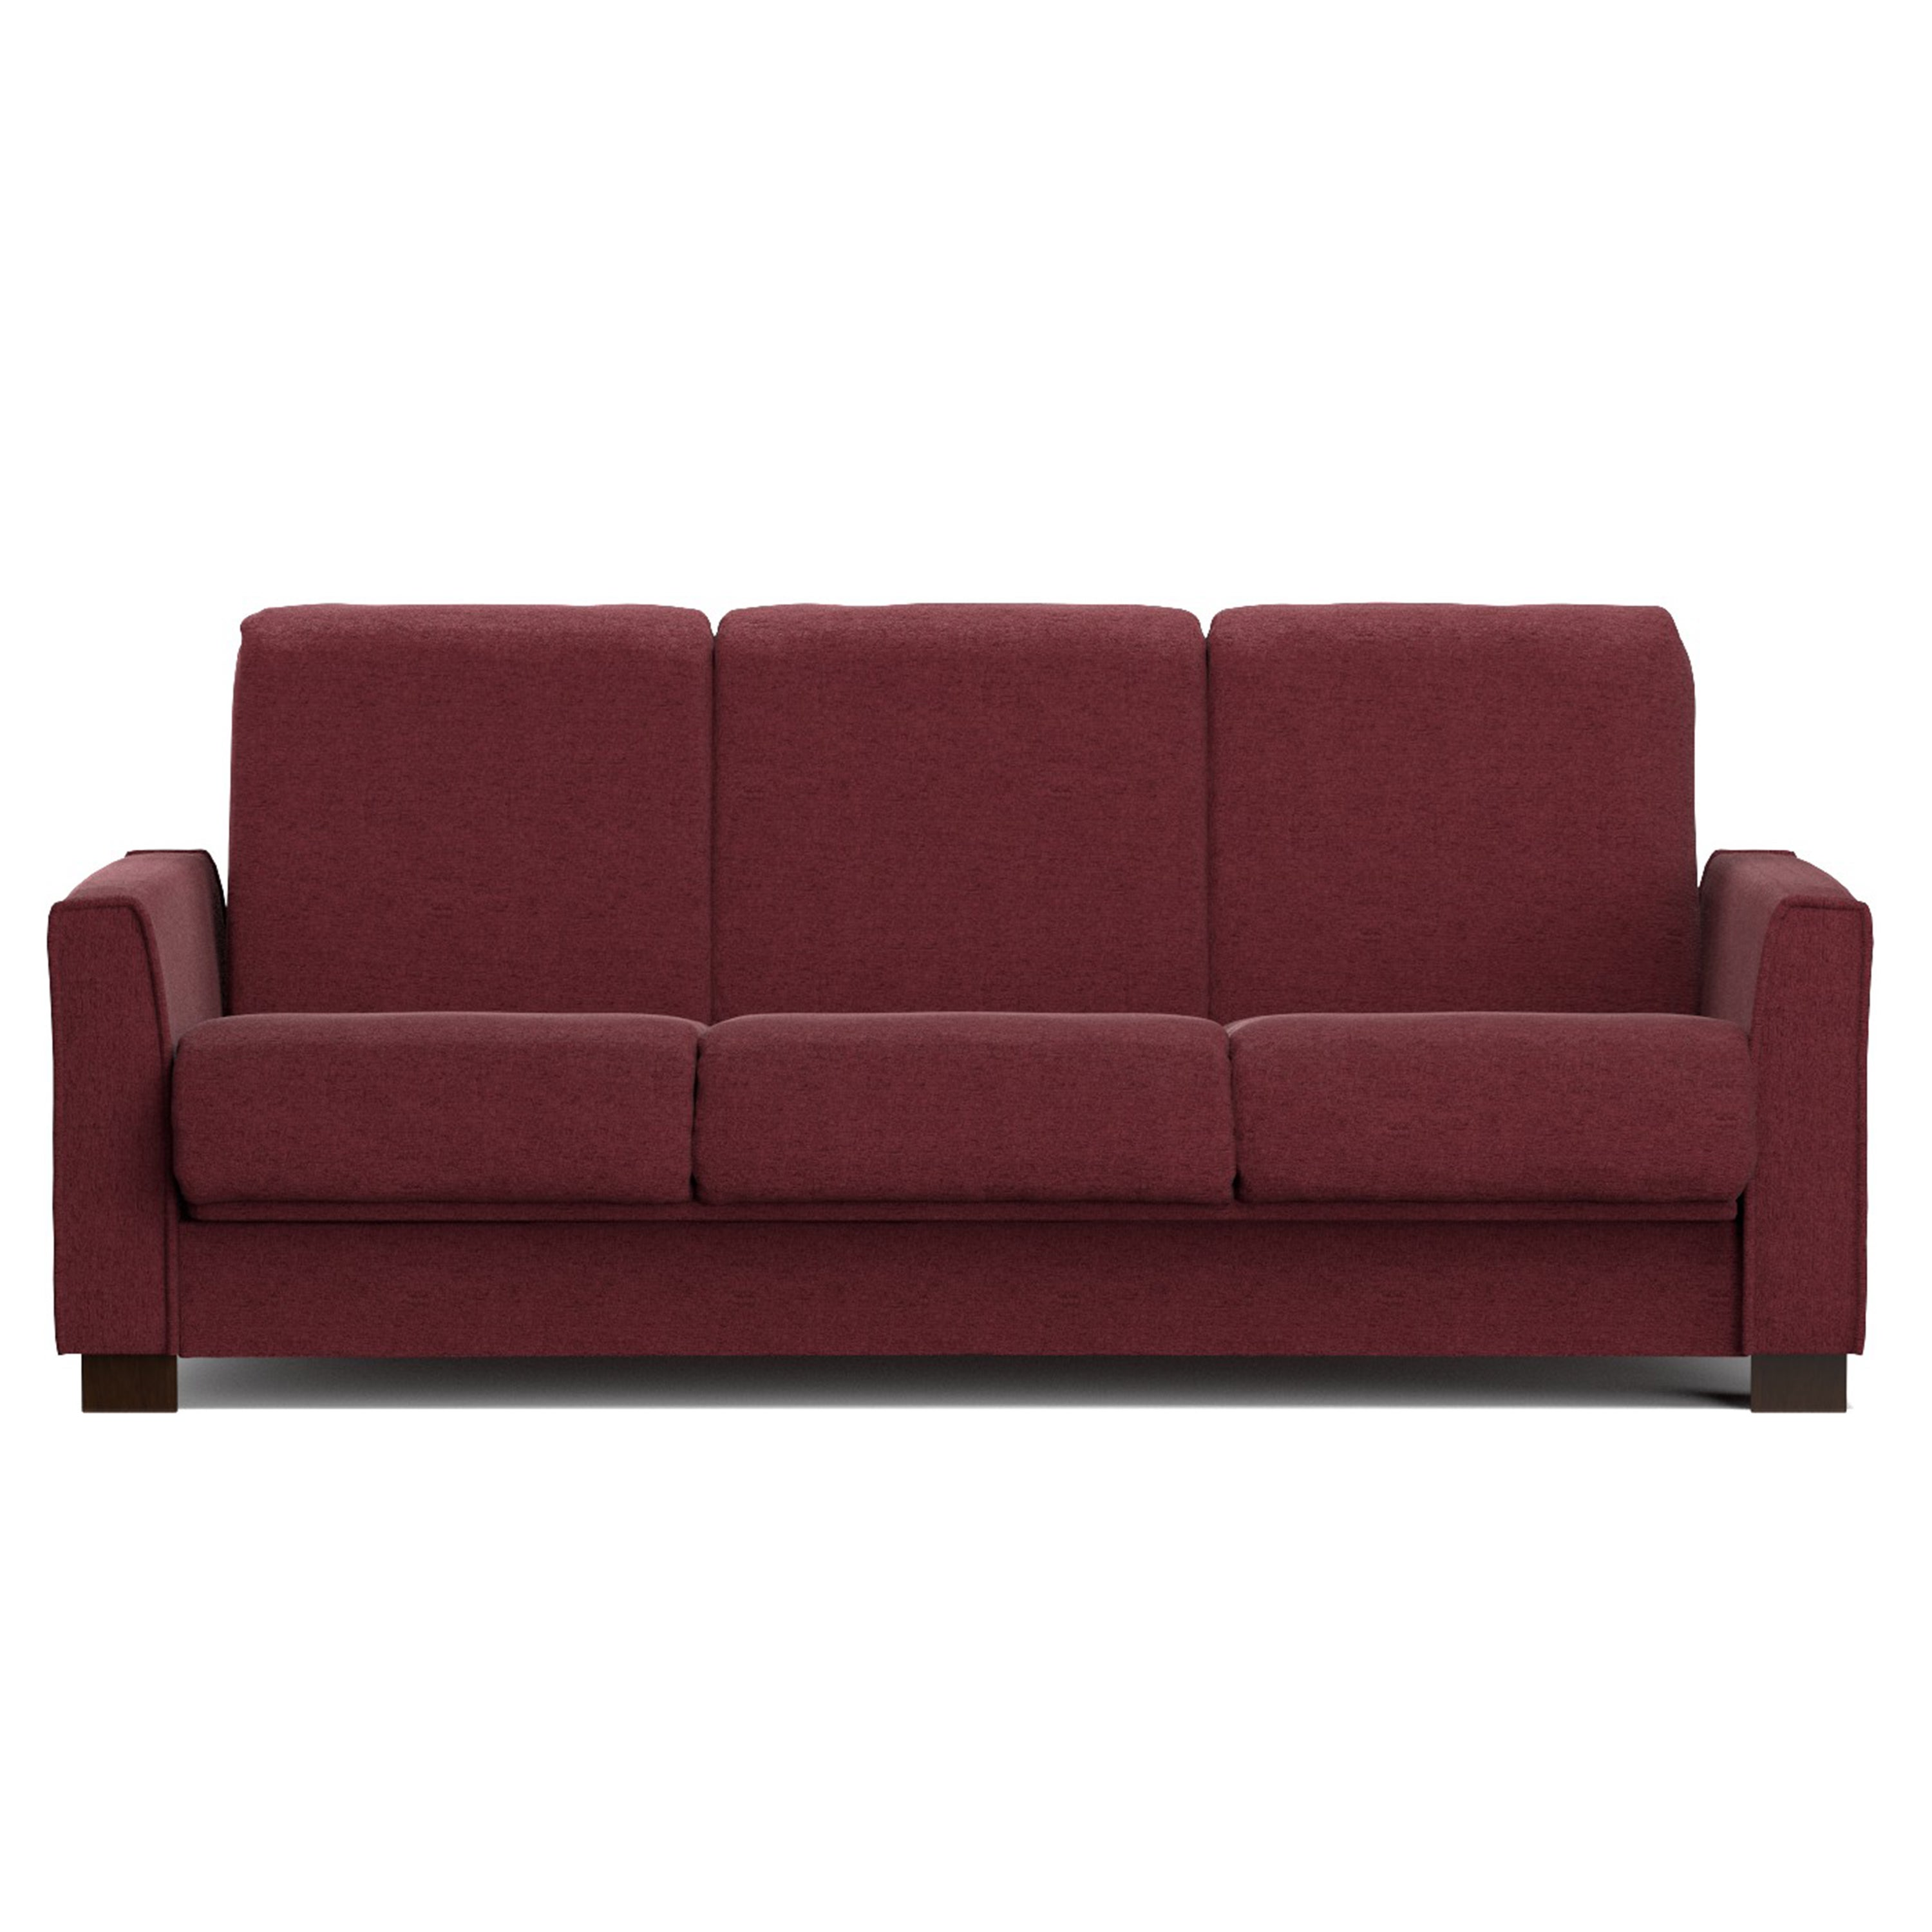 Handy Living Bryant Berry Red Chenille Convert-a-Couch Fu...